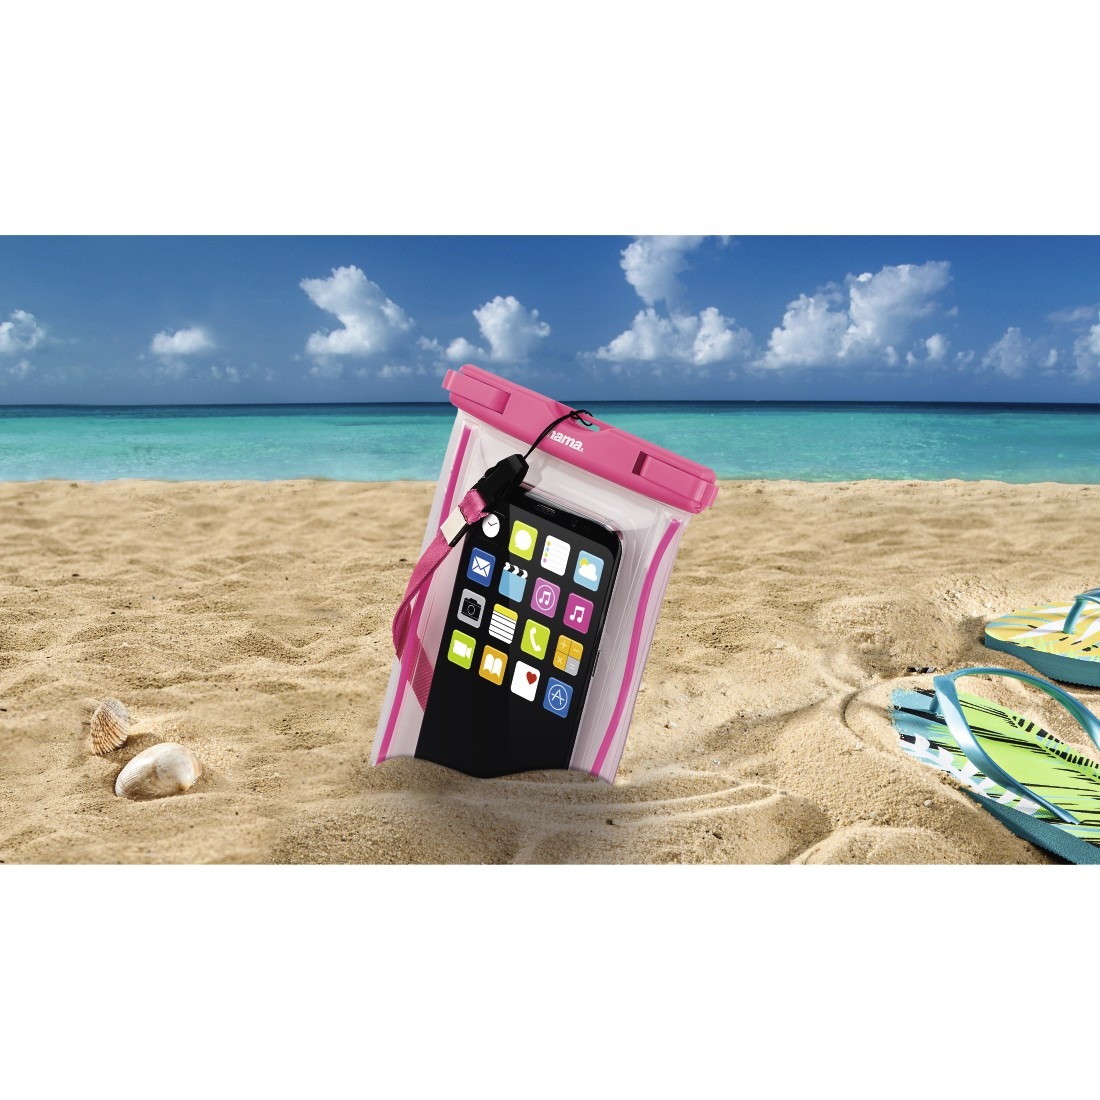 awx High-Res Appliance - Hama, Playa Outdoor Bag for Smartphones, Size XXL, pink